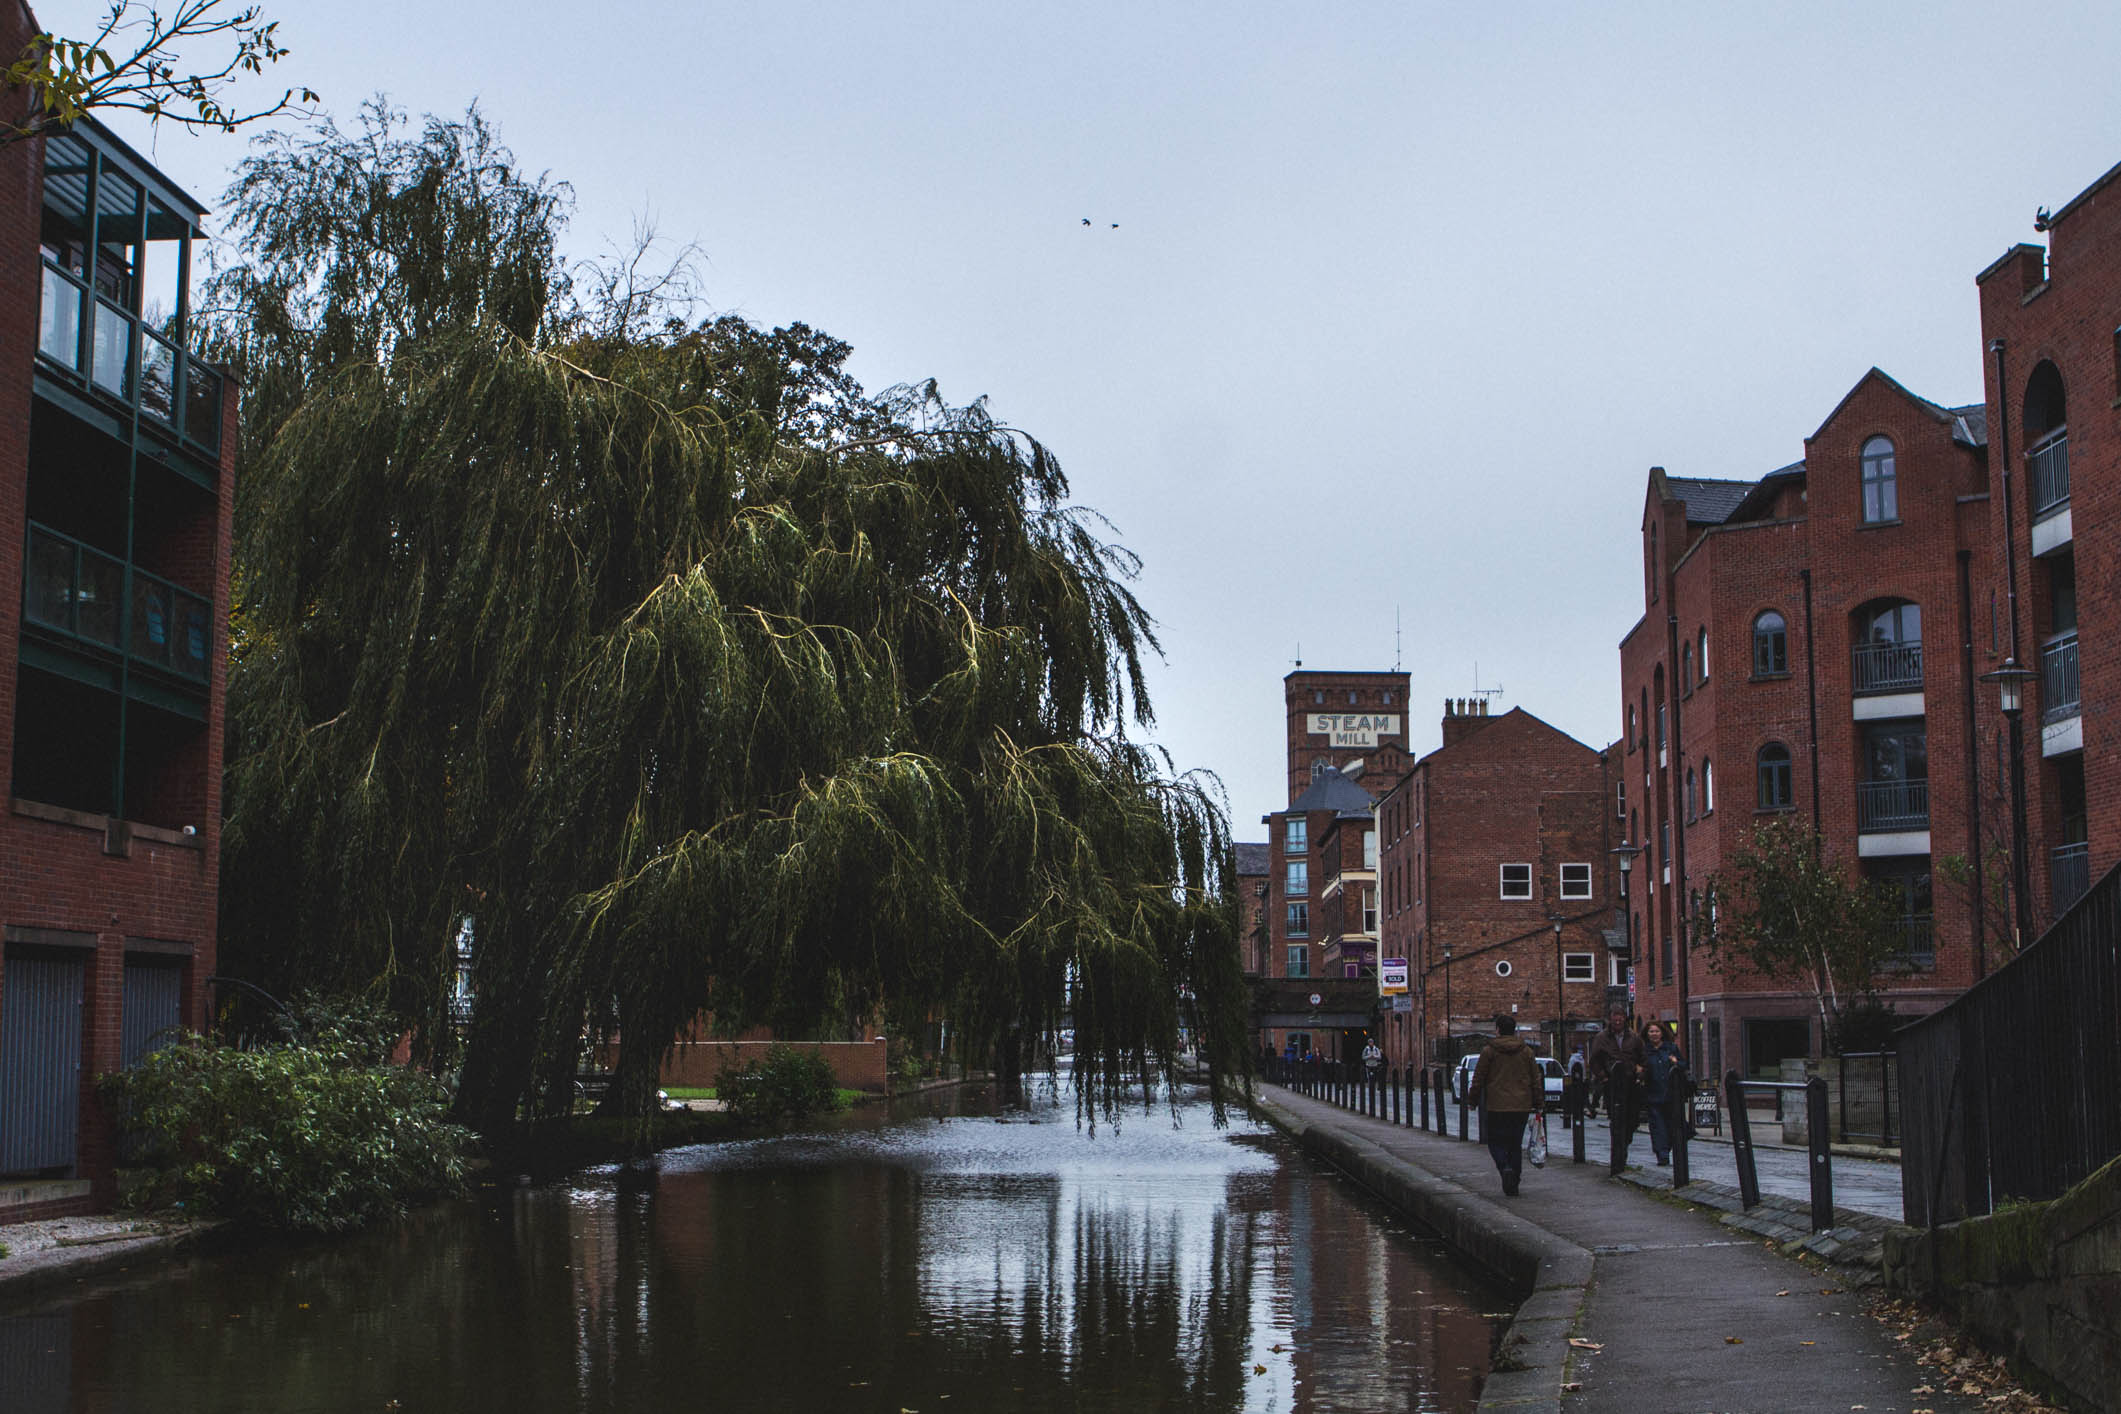 The Chester canal, with the Steam Mill visible in the background